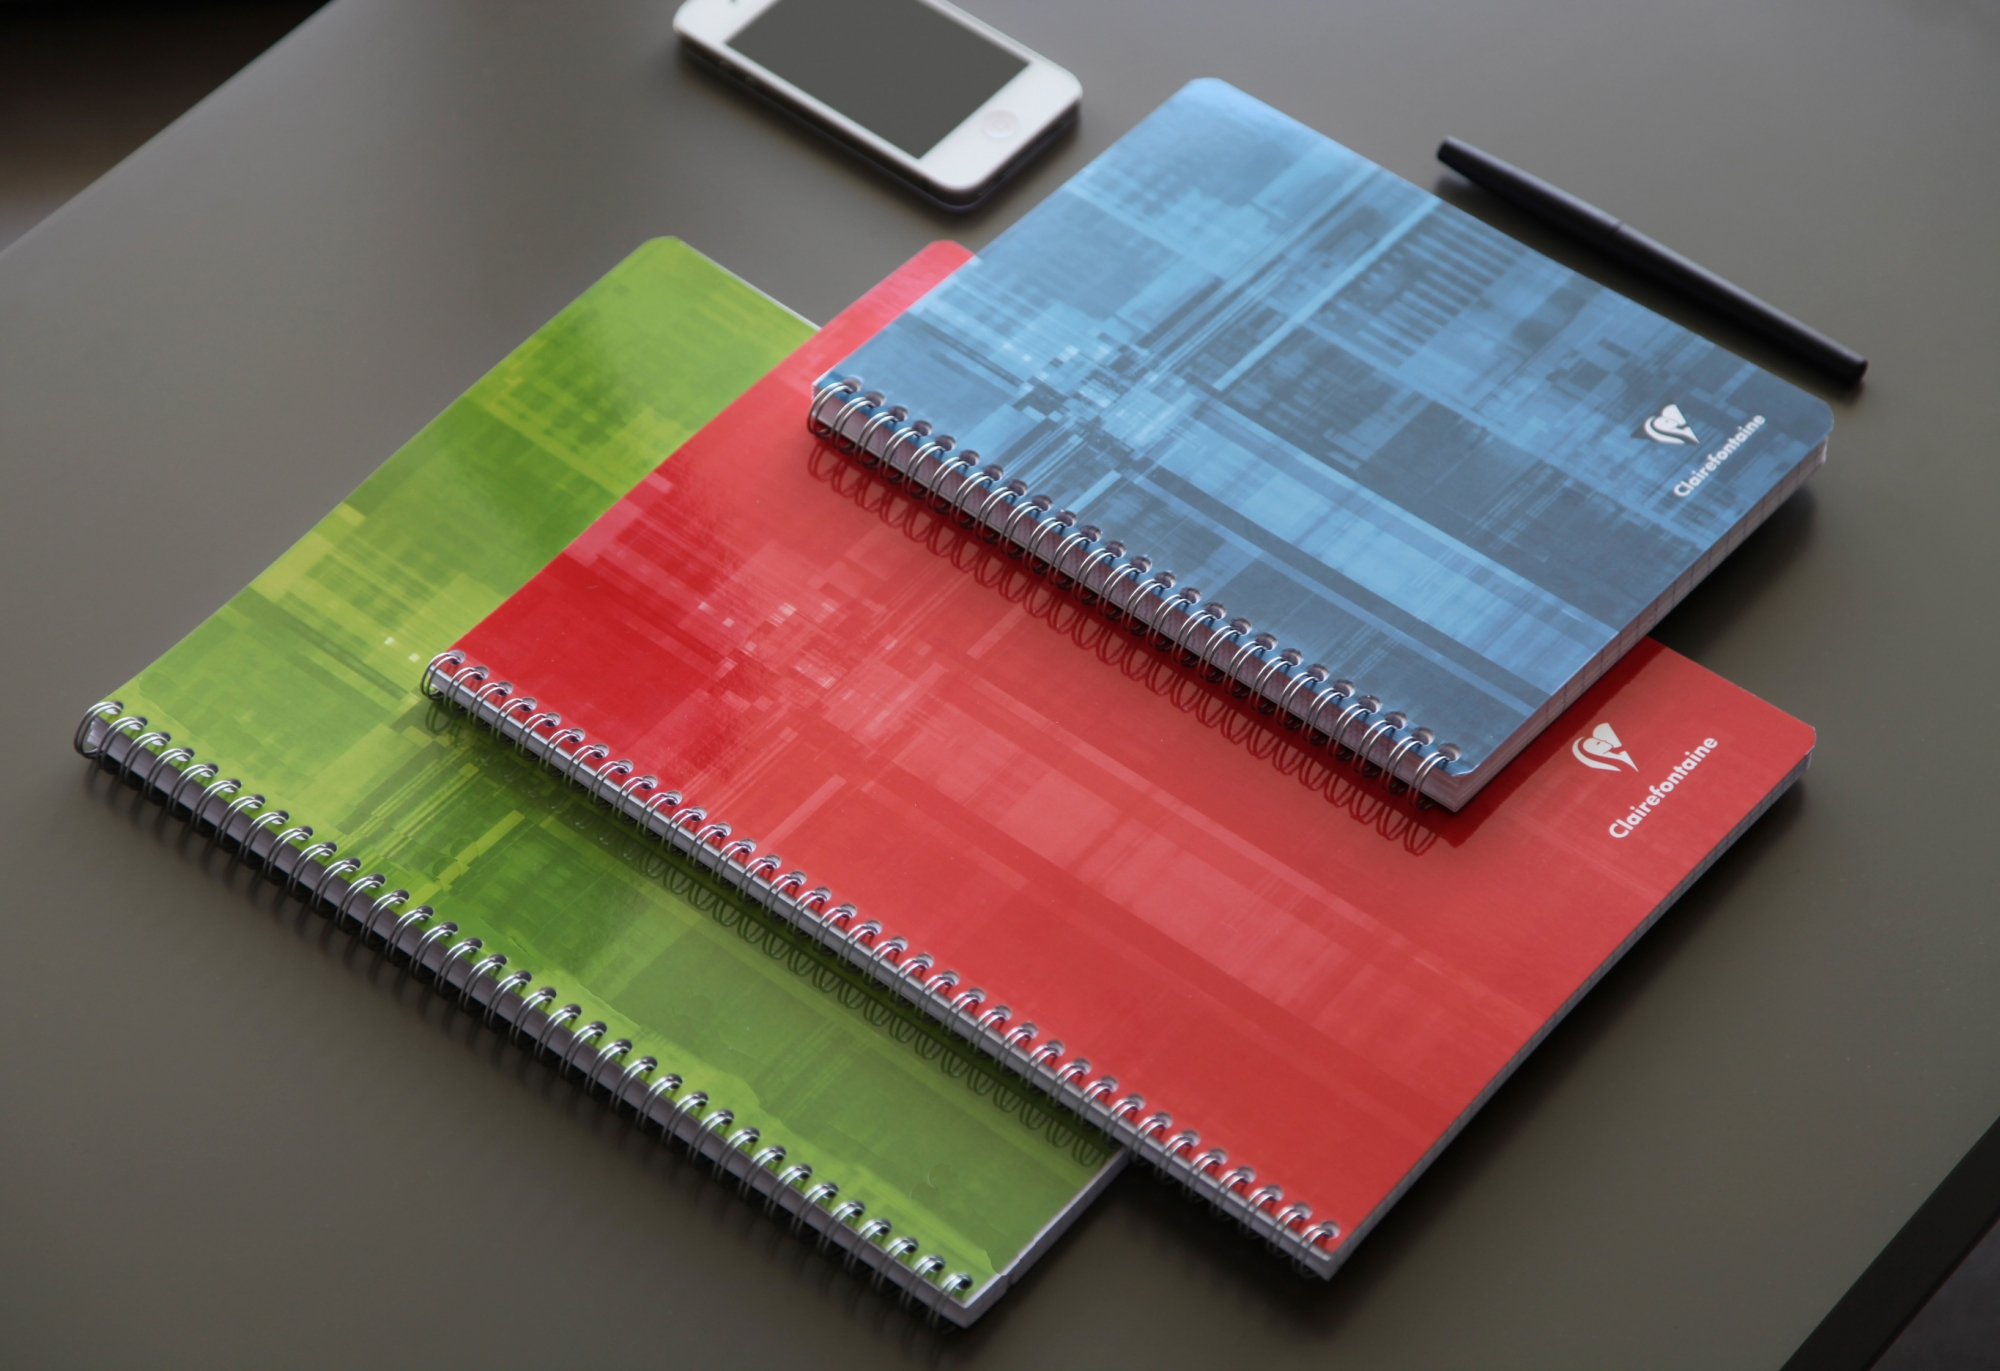 Clairefontaine-notebooks.jpg